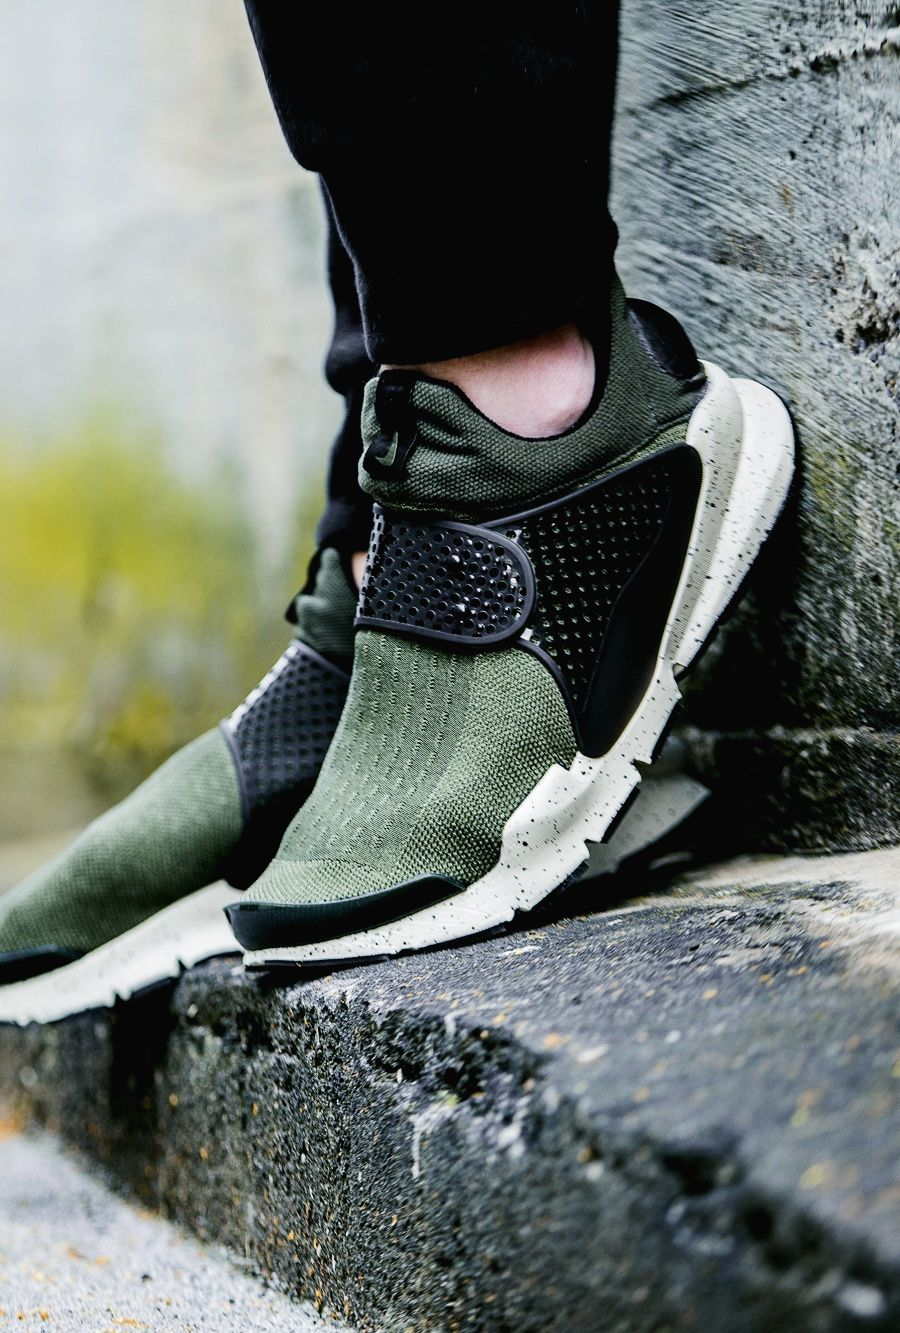 fdce46f39b539 Nike Sock Dart 'Olive' | Clothes | Sneakers nike, Shoes, Sneakers